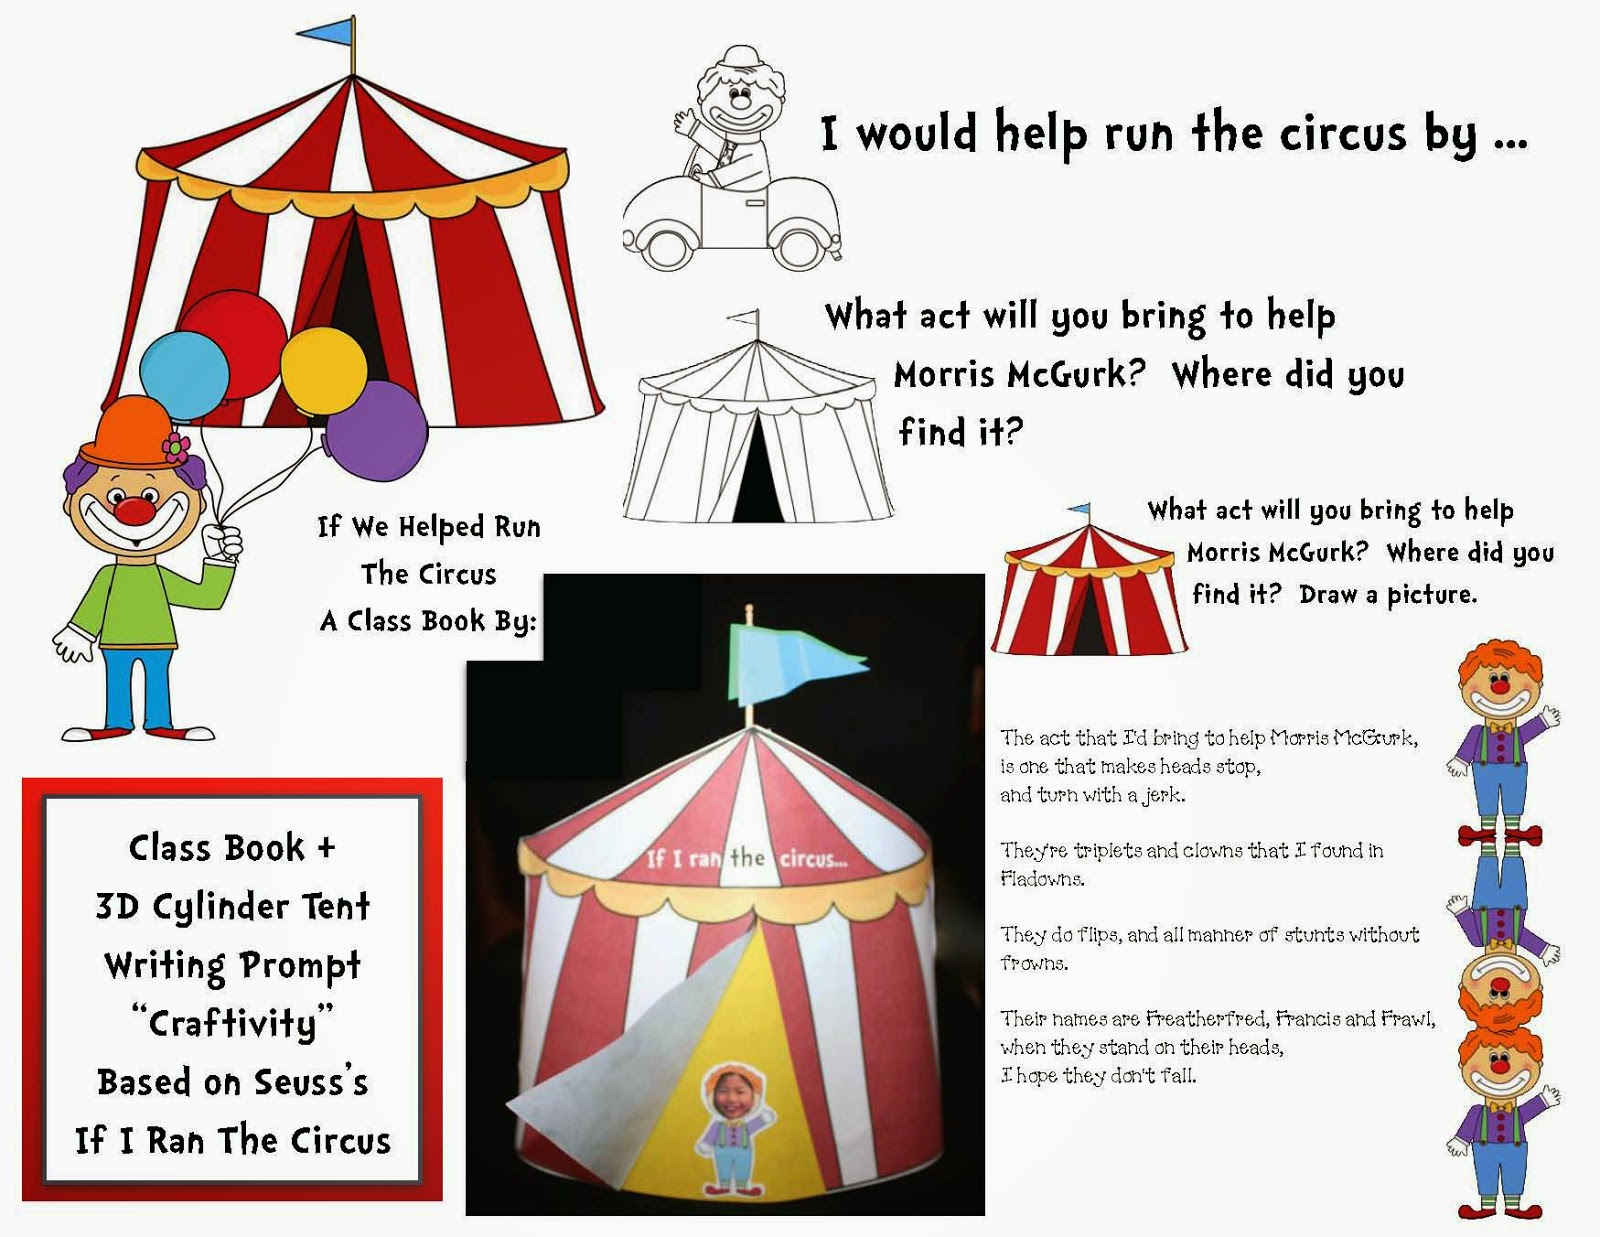 Circus essay english - How to start an introduction paragraph for